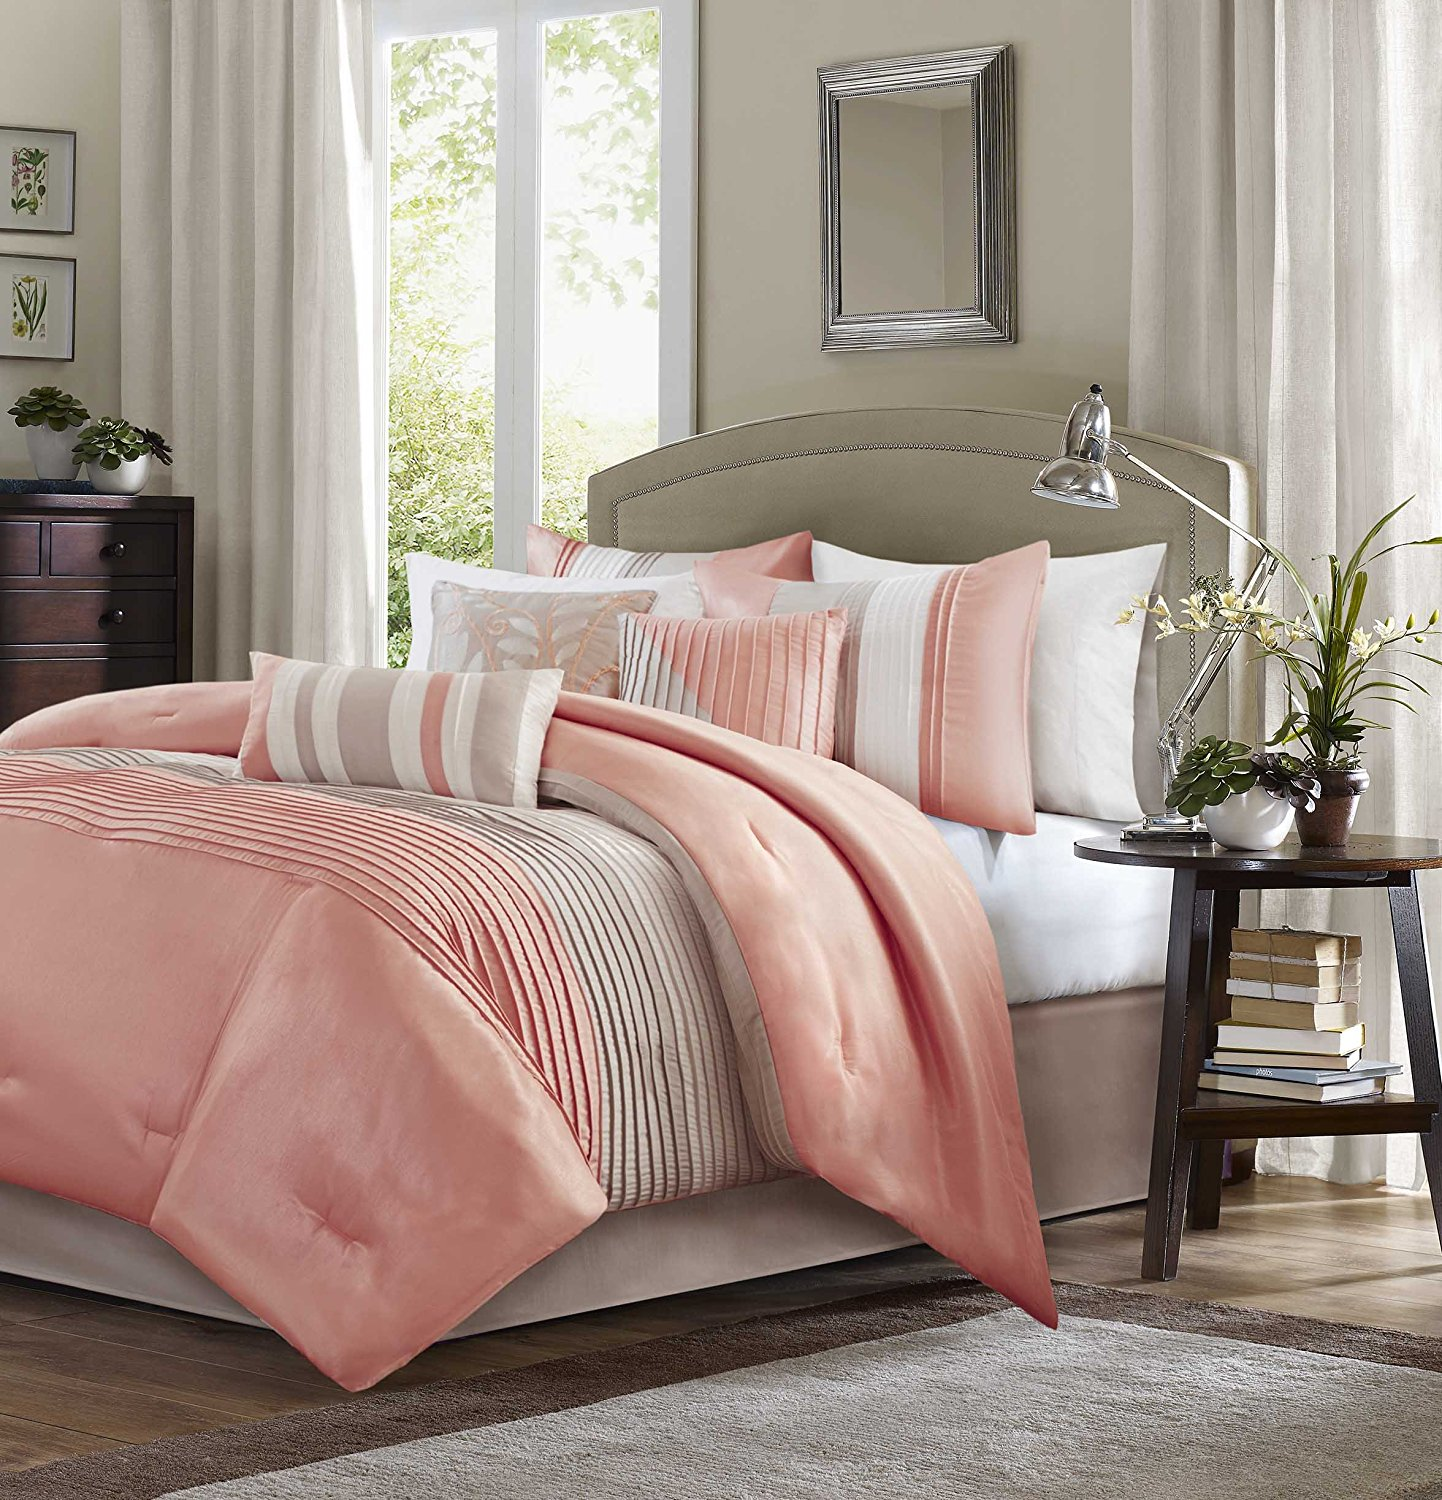 Image of: Coral Bedding Queen